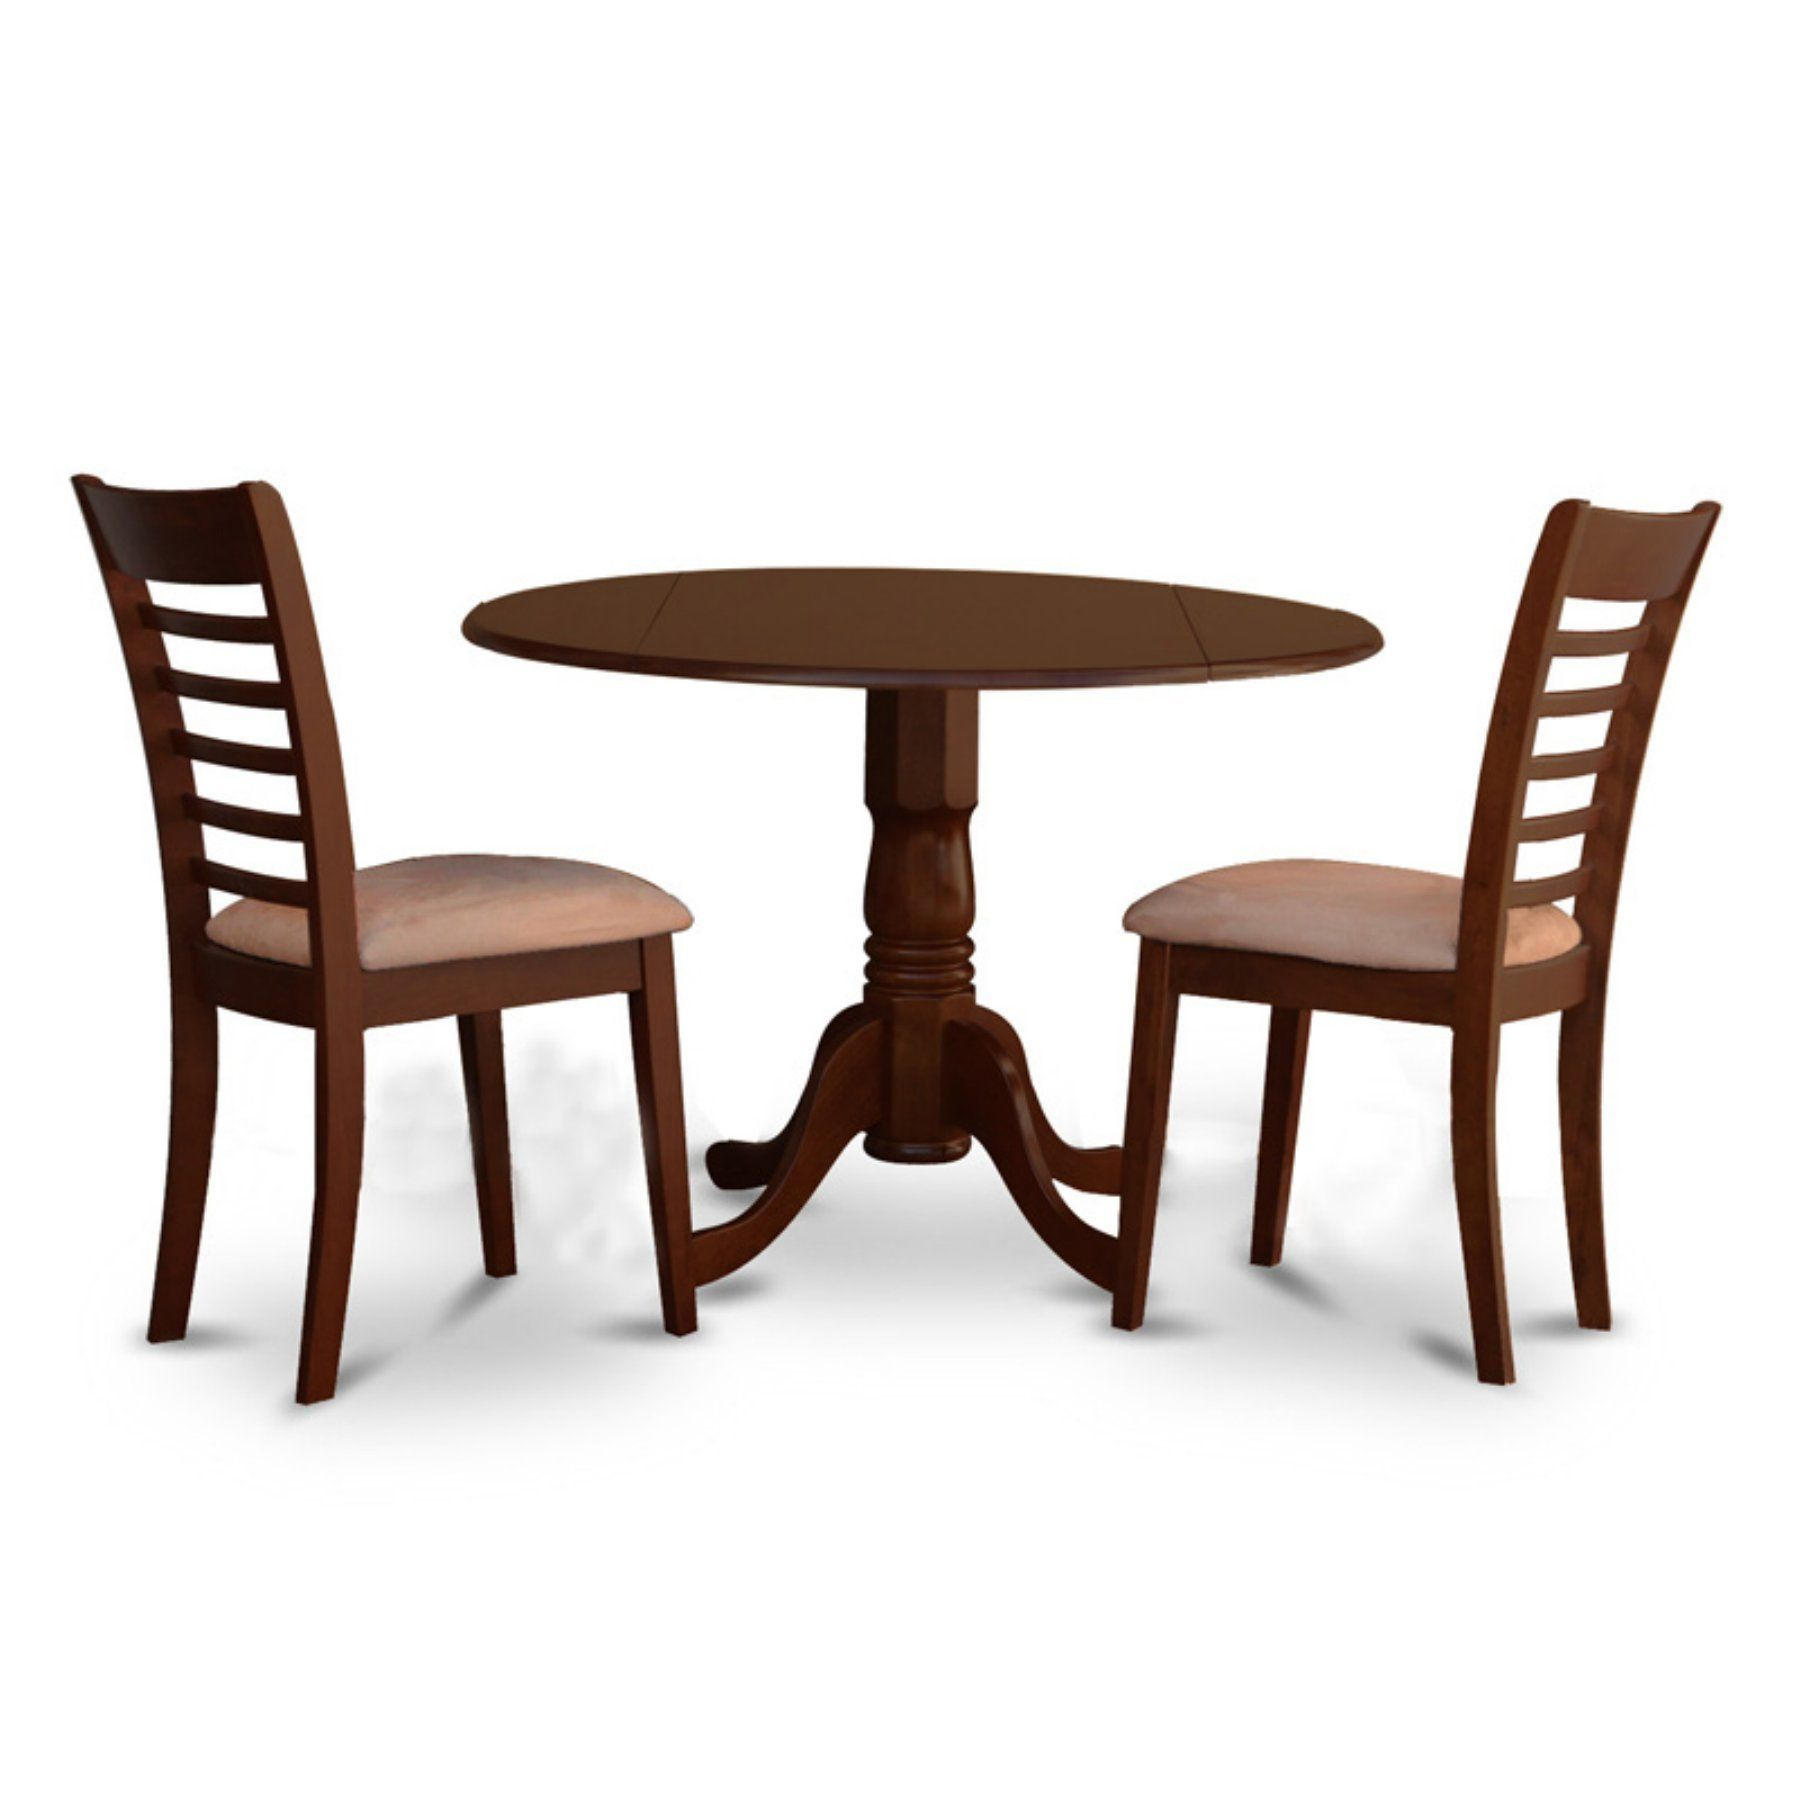 East West Furniture 3 Piece Straight Ladderback Drop Leaf Dinette Enchanting Three Piece Dining Room Set Design Decoration